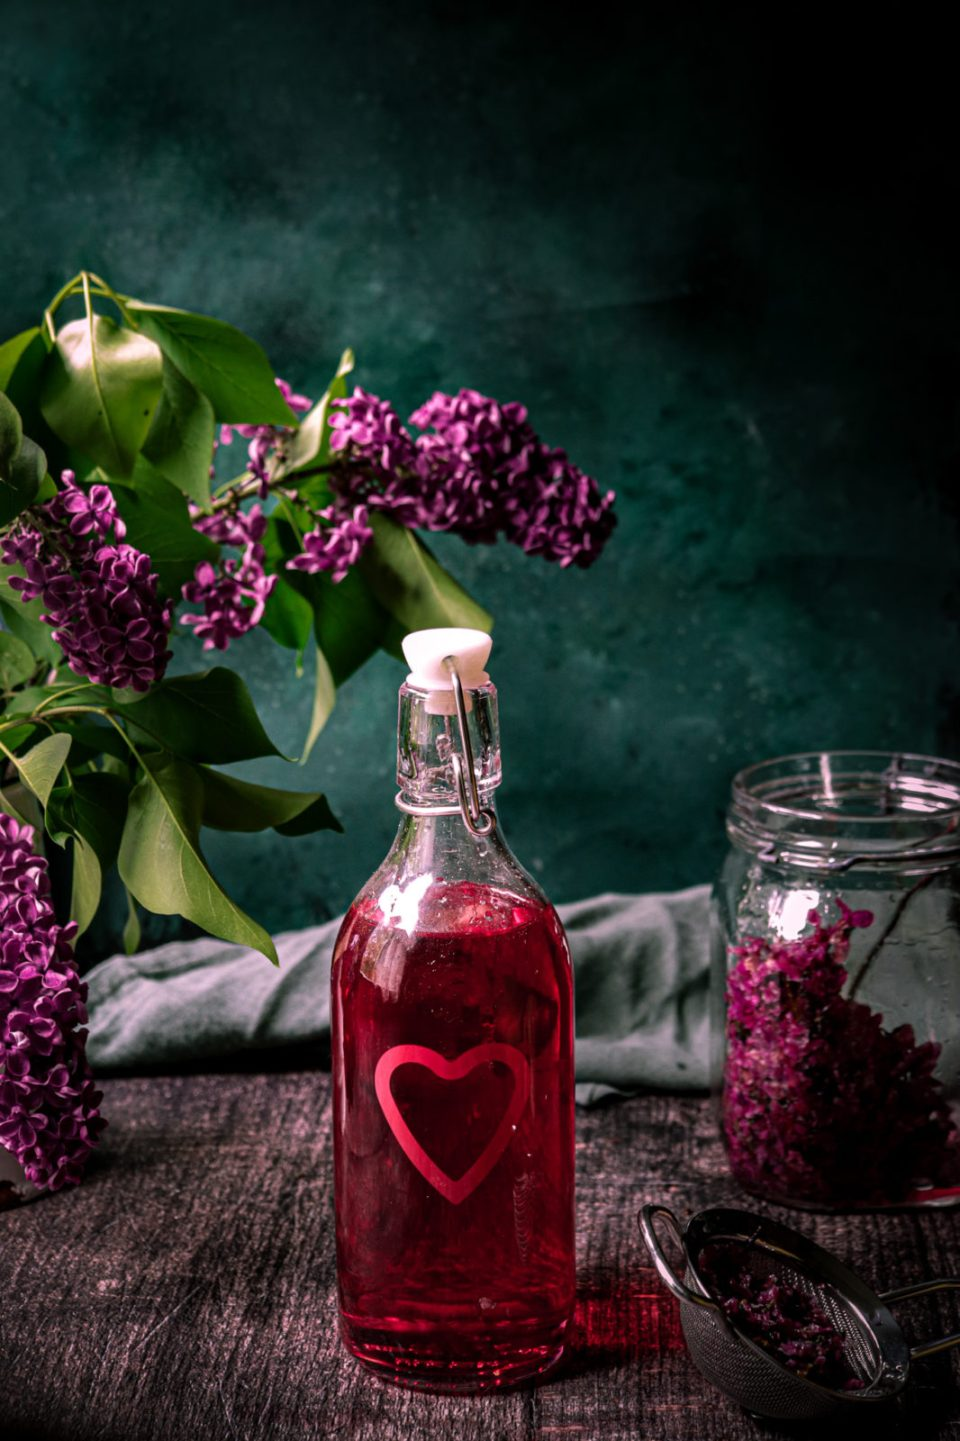 lilac syrup recipe, simple syrup